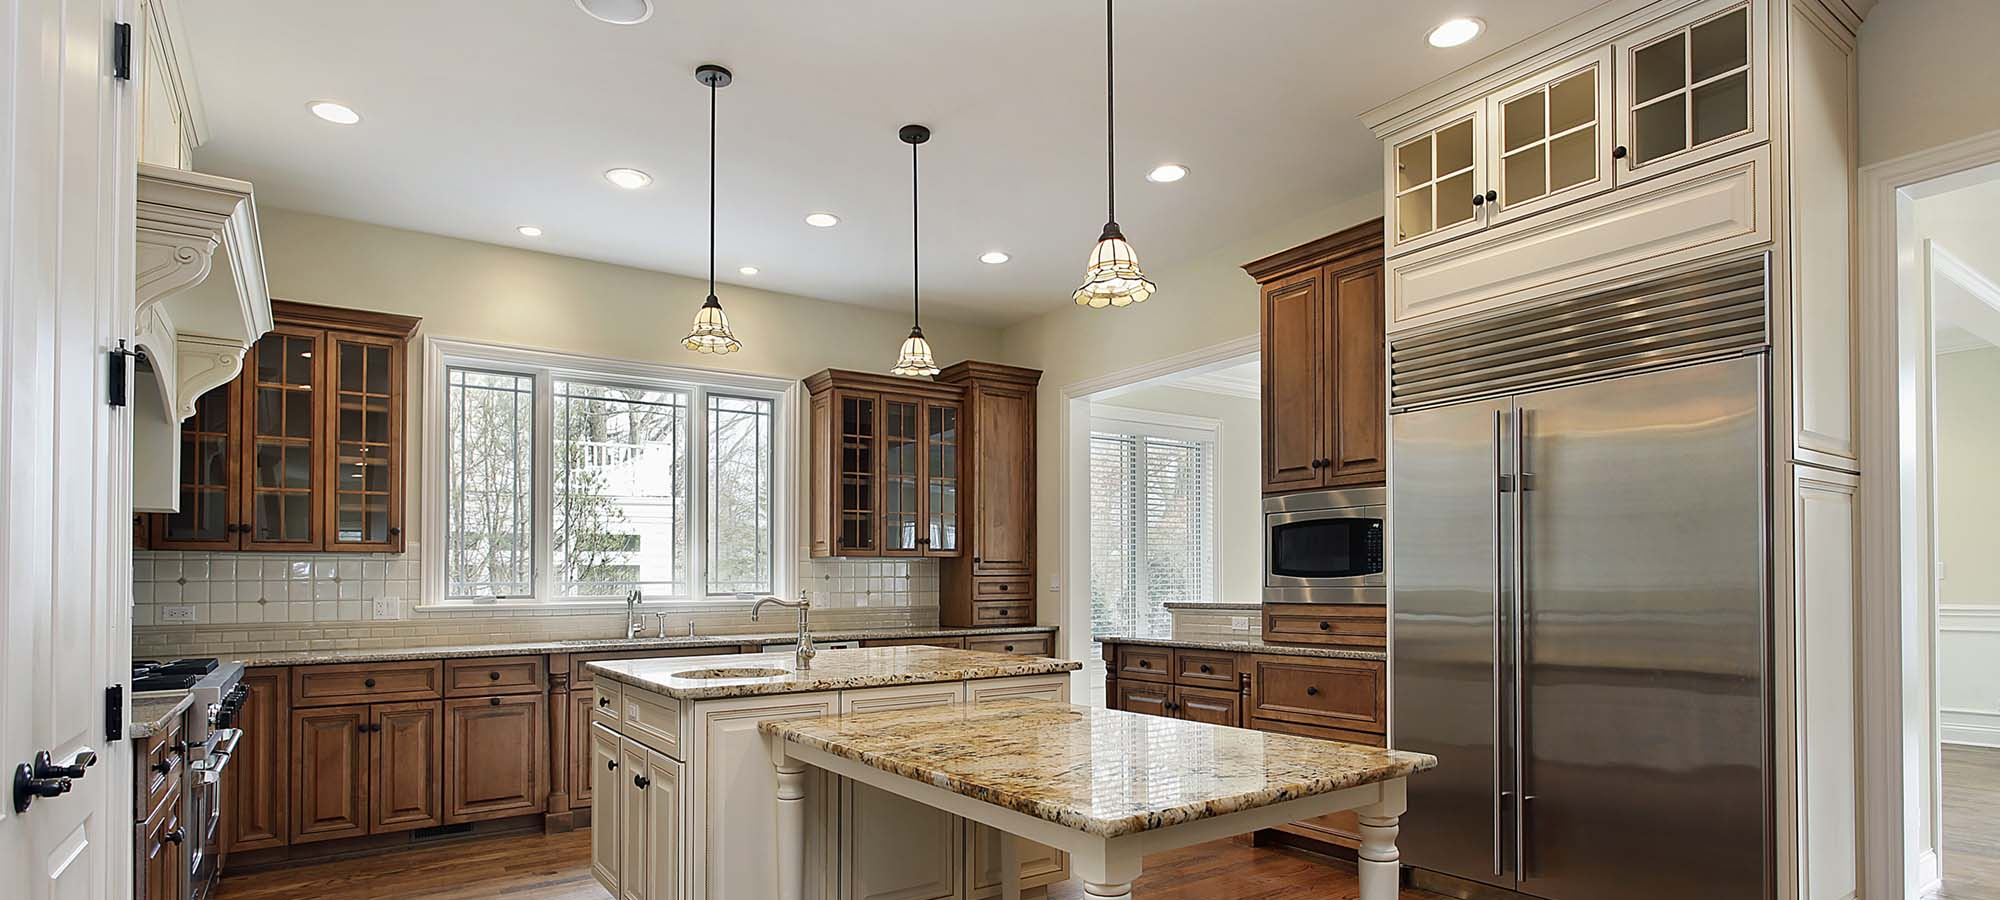 10 Tips to Get Your Kitchen Lighting Right 2